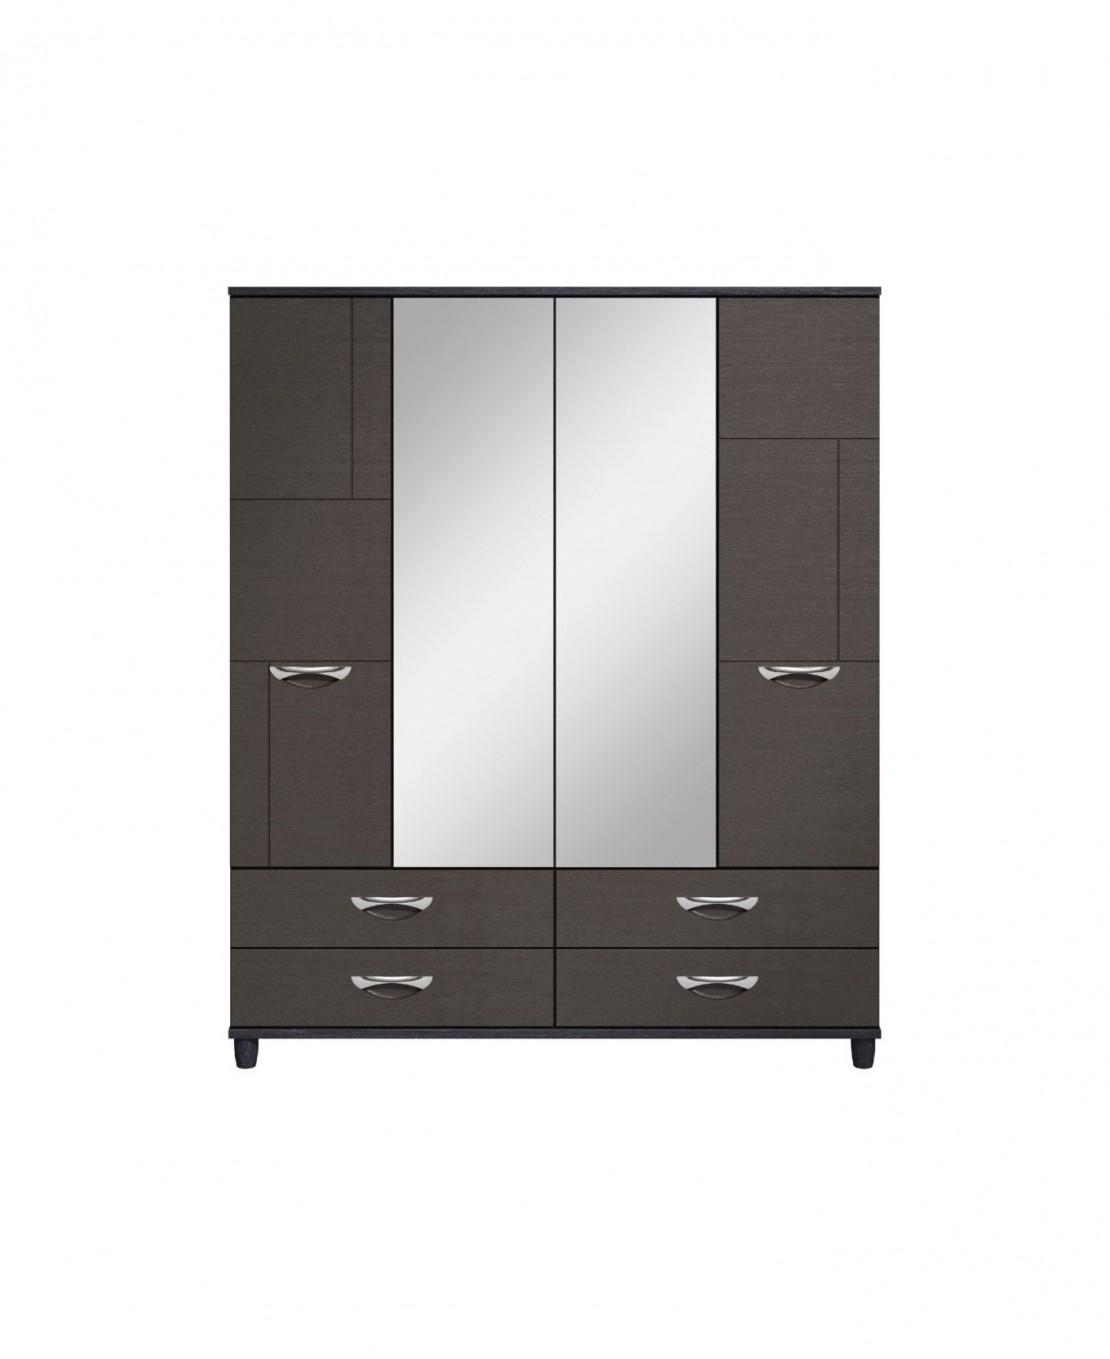 /_images/product-photos/kt-furniture-moda-graphite-4-door-centre-mirrored-gents-robe-a.jpg